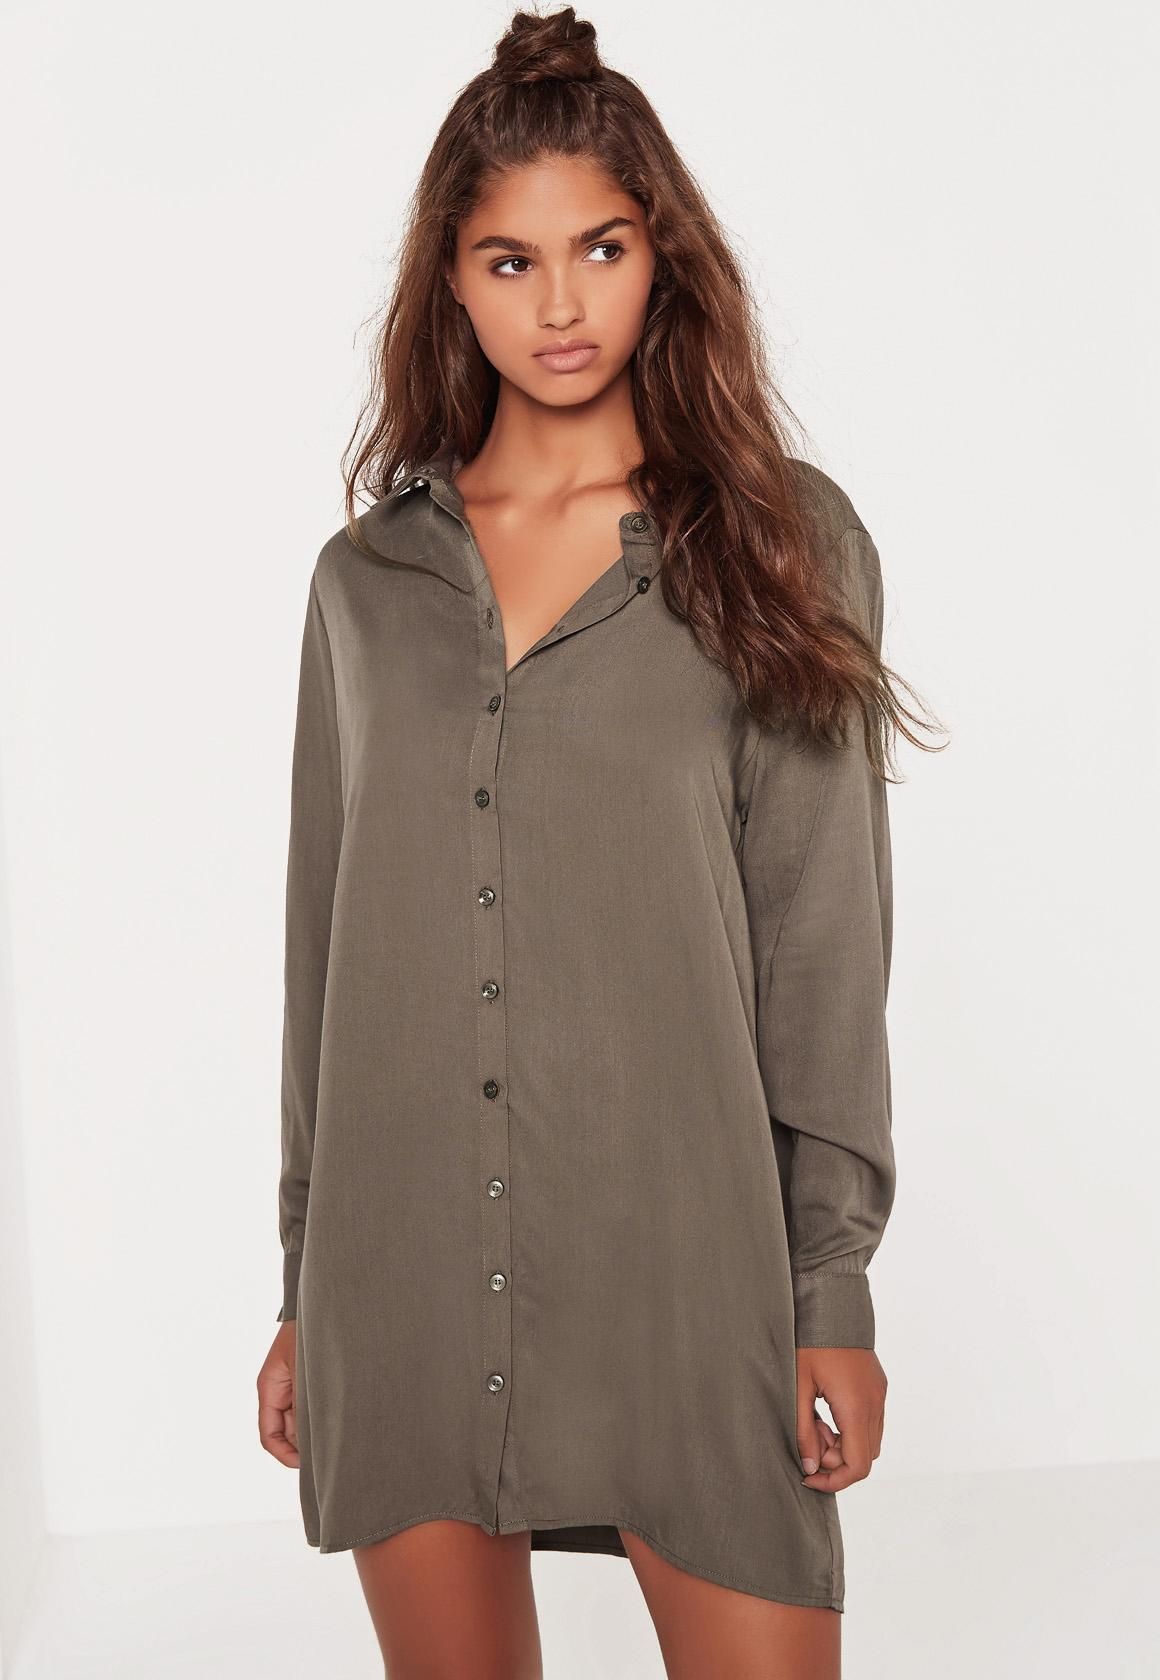 Oversized Shirt Dress Khaki - Missguided